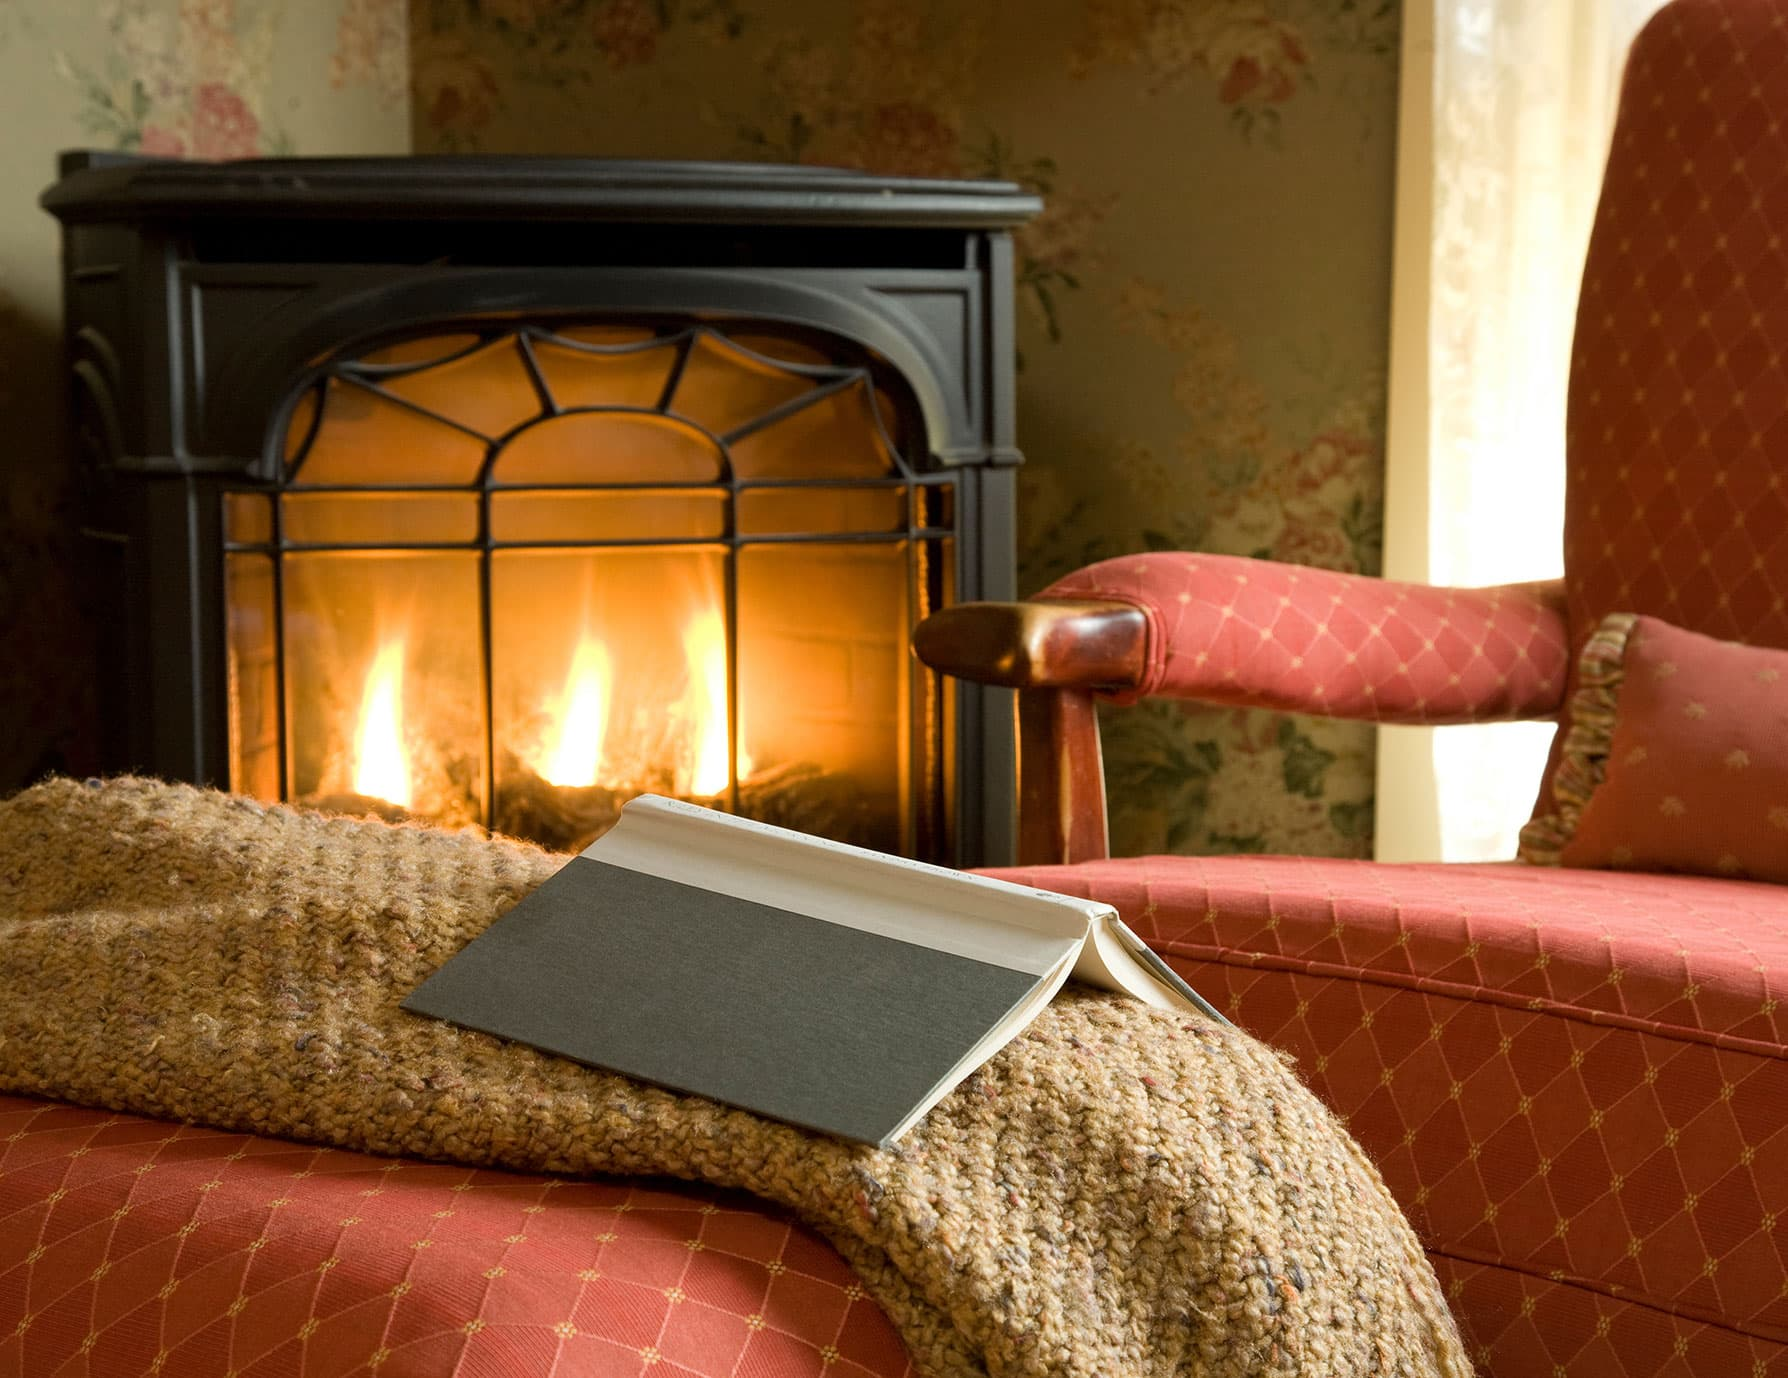 Book on ottoman by warm gas fireplace